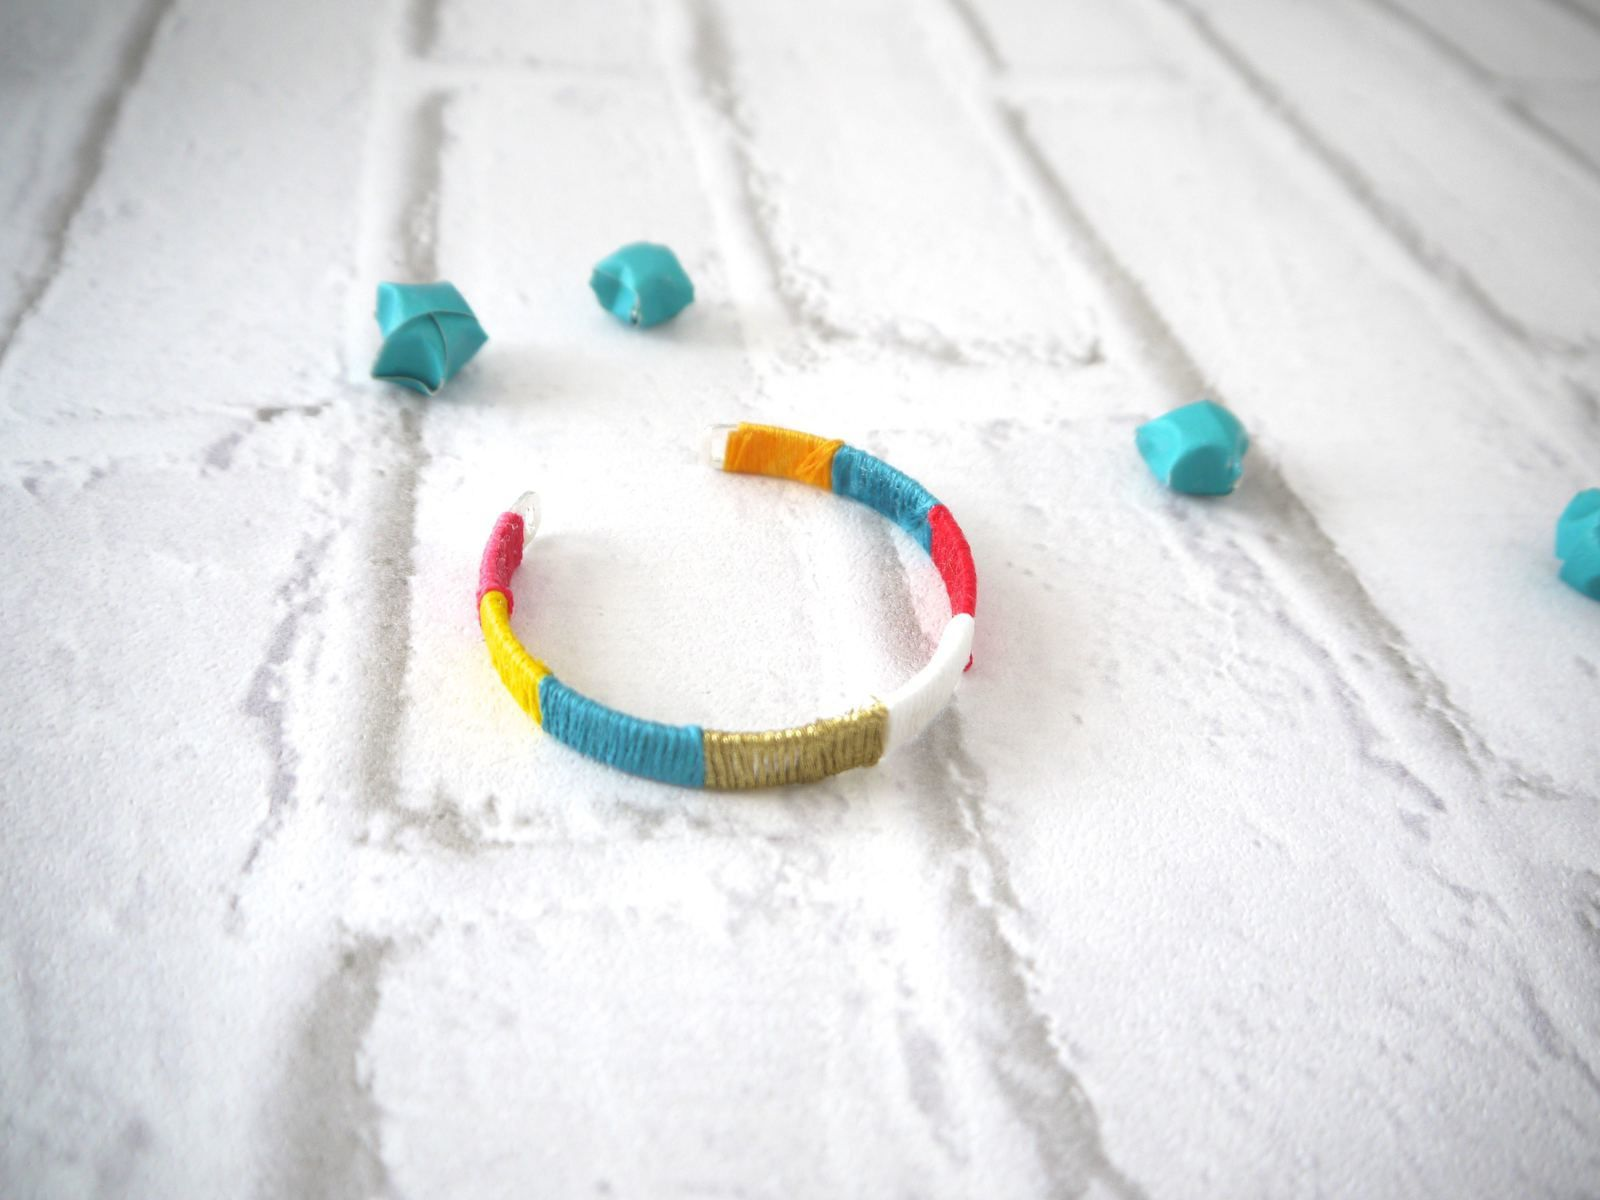 Customiser un bracelet jonc - DIY